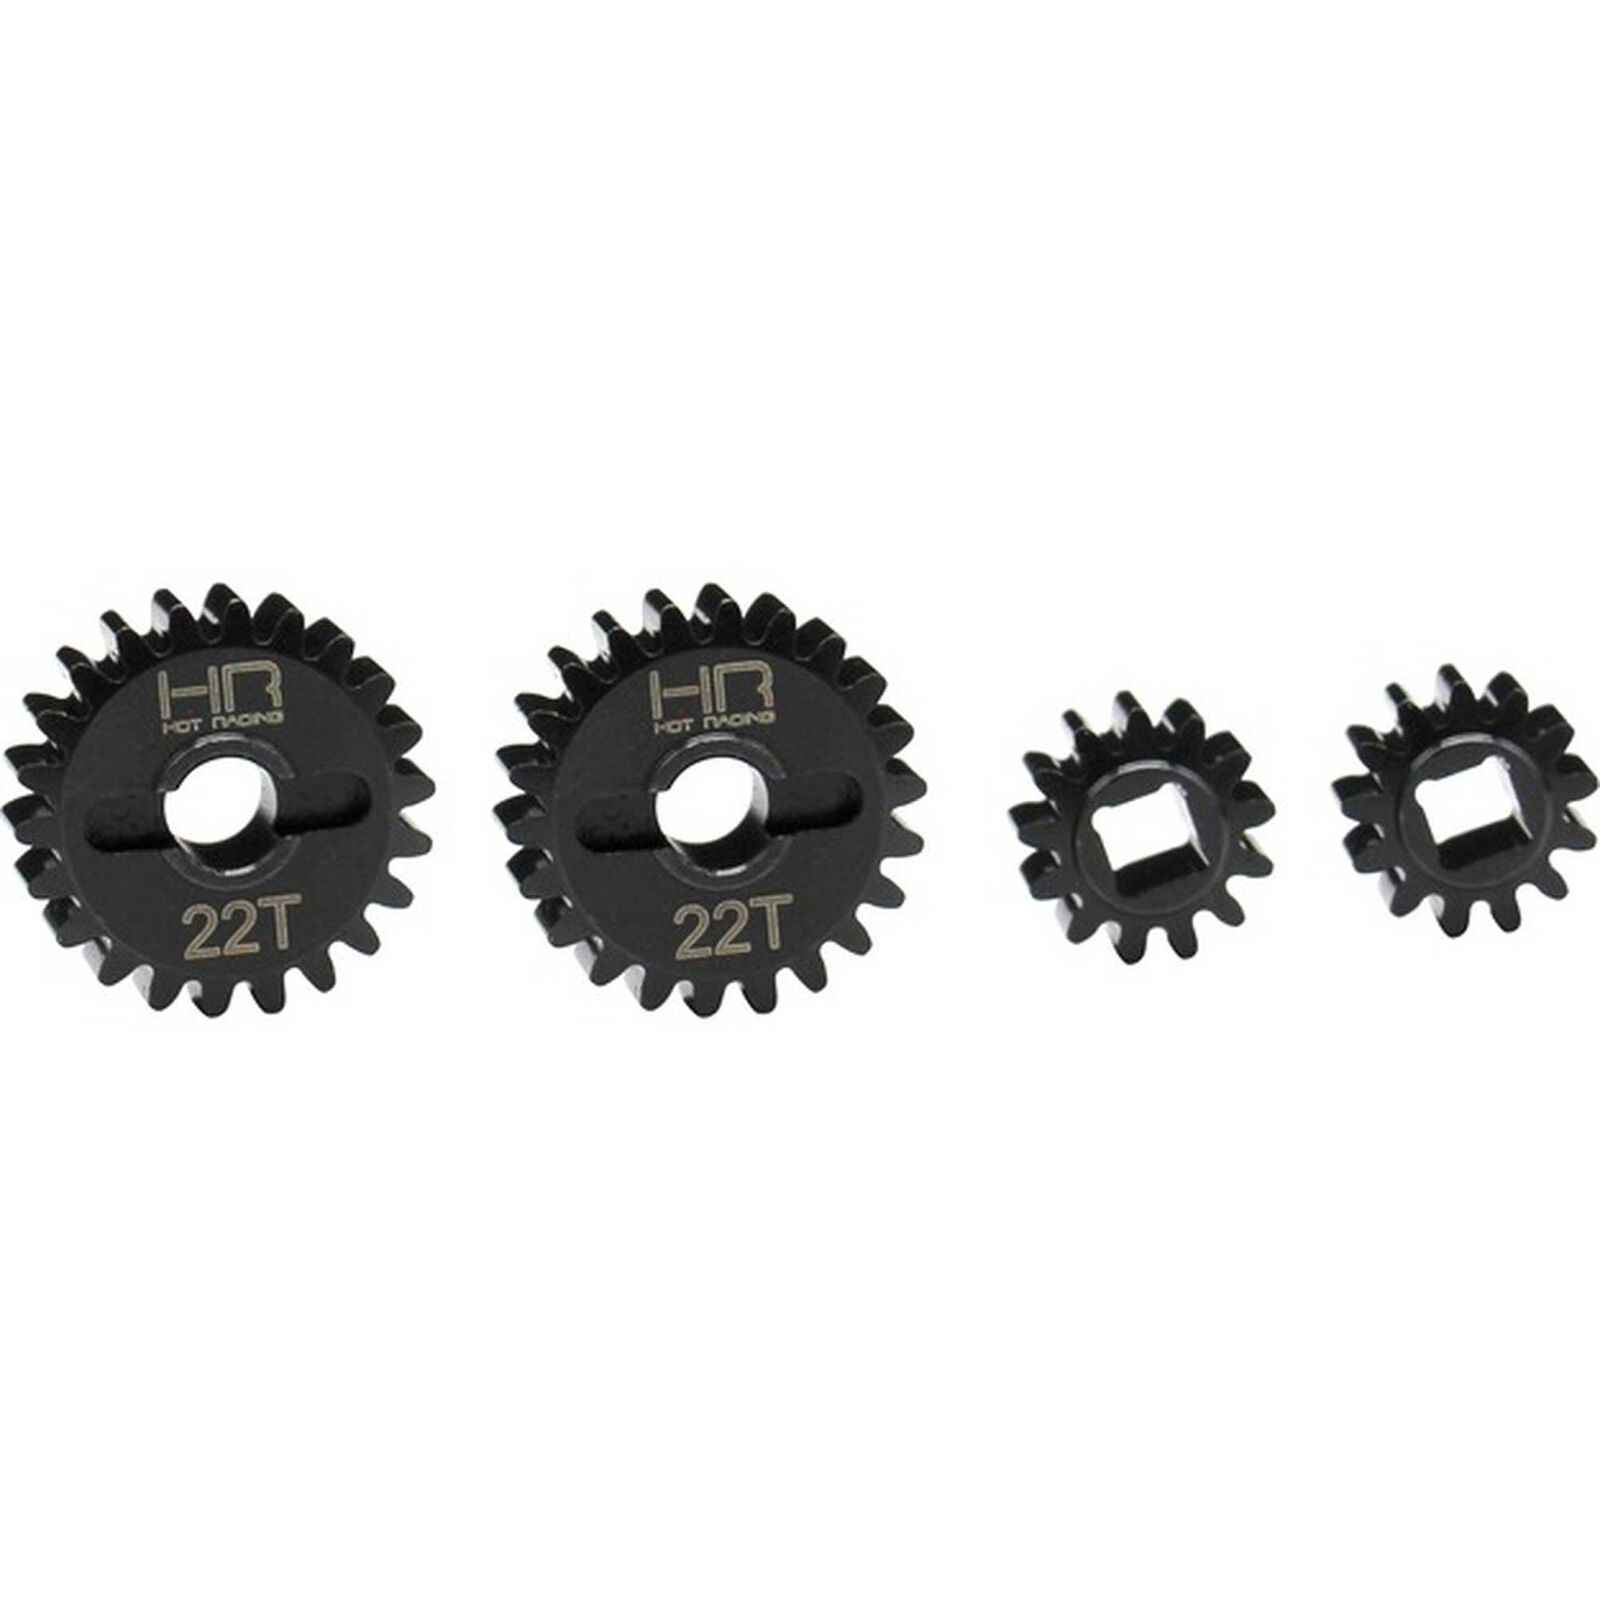 Overdrive Portal Machined Gear Set, 13-22T: Axial UTB